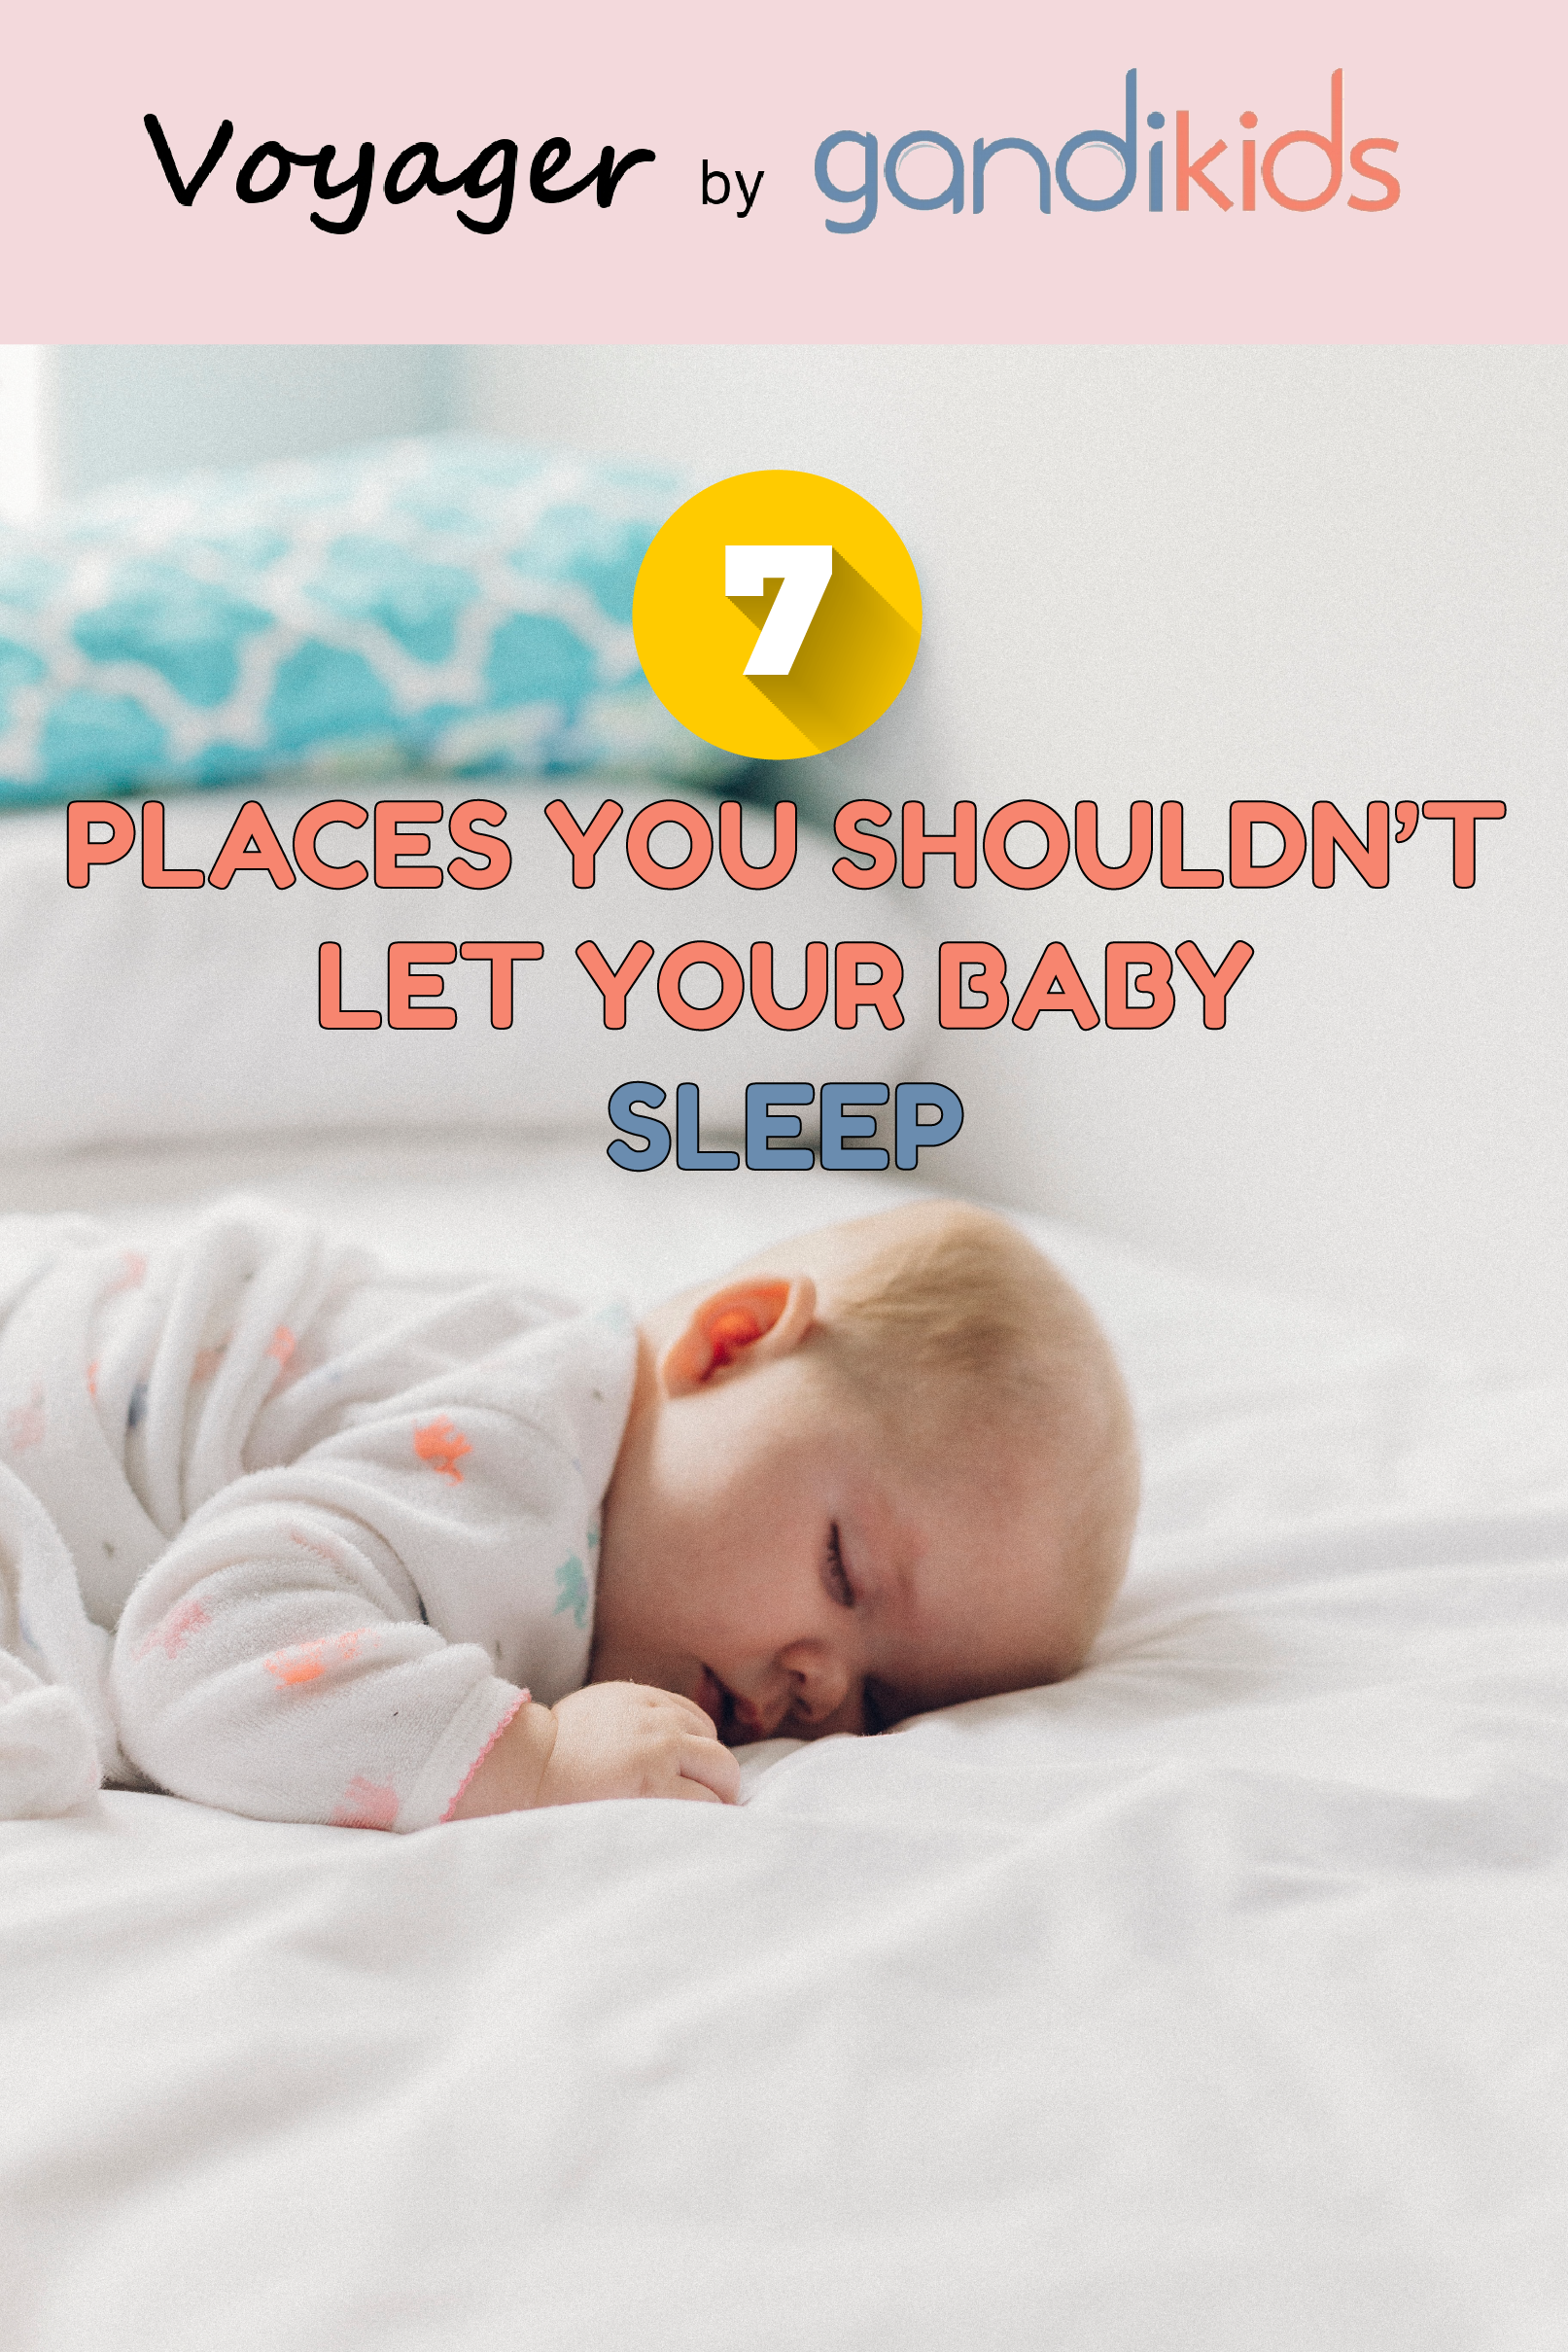 As new parents, you might be a bit worried about choosing